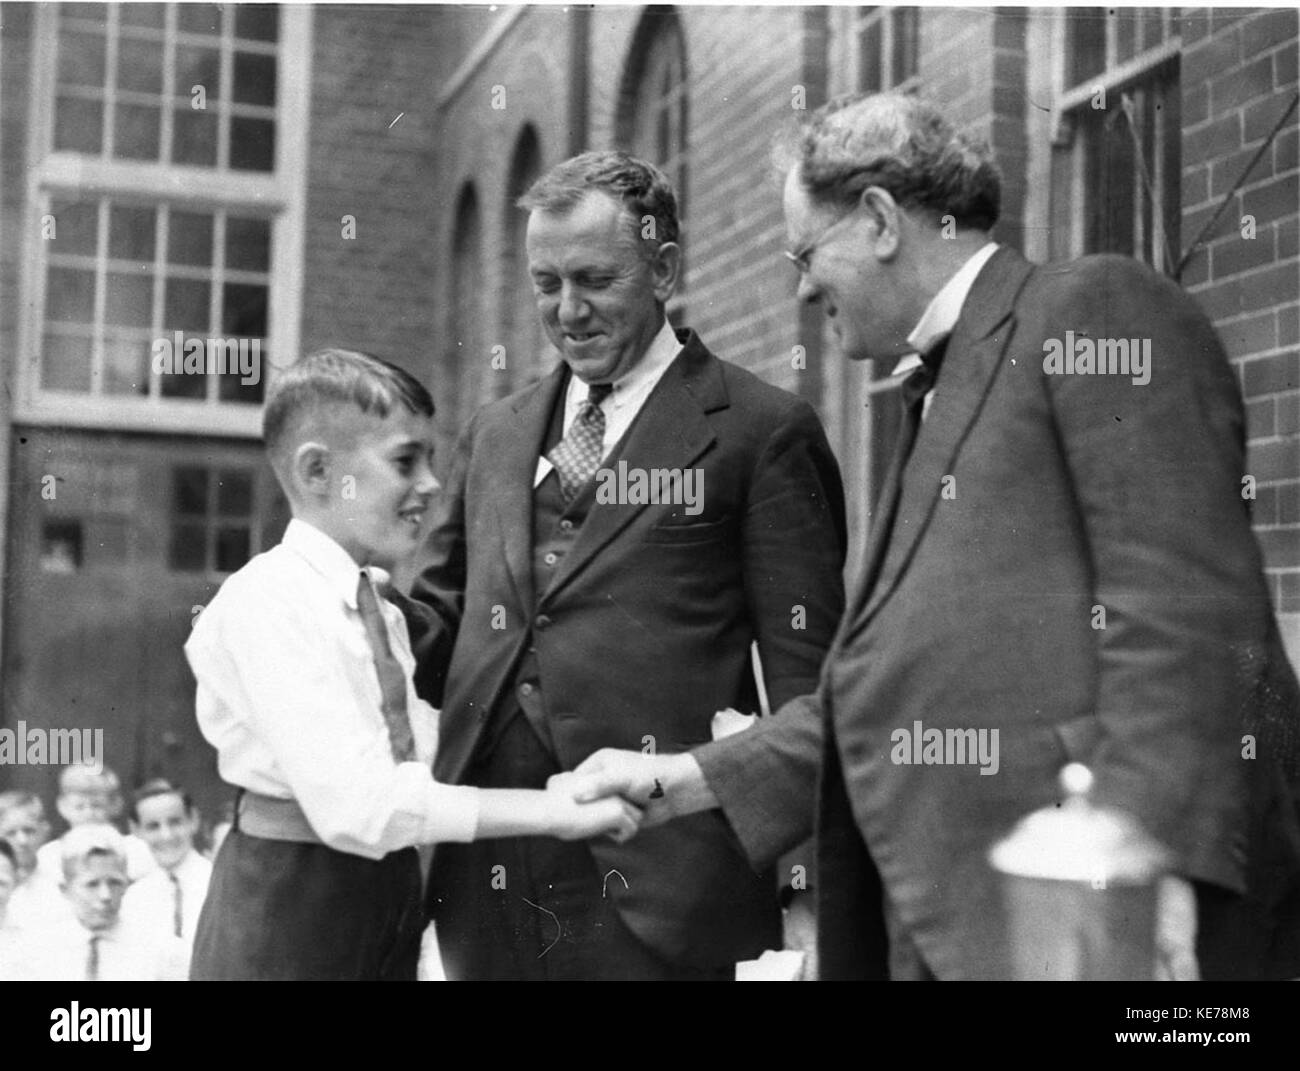 43234 Director of Education G Ross Thomas shakes hands with the dux of Drummoyne Primary School - Stock Image